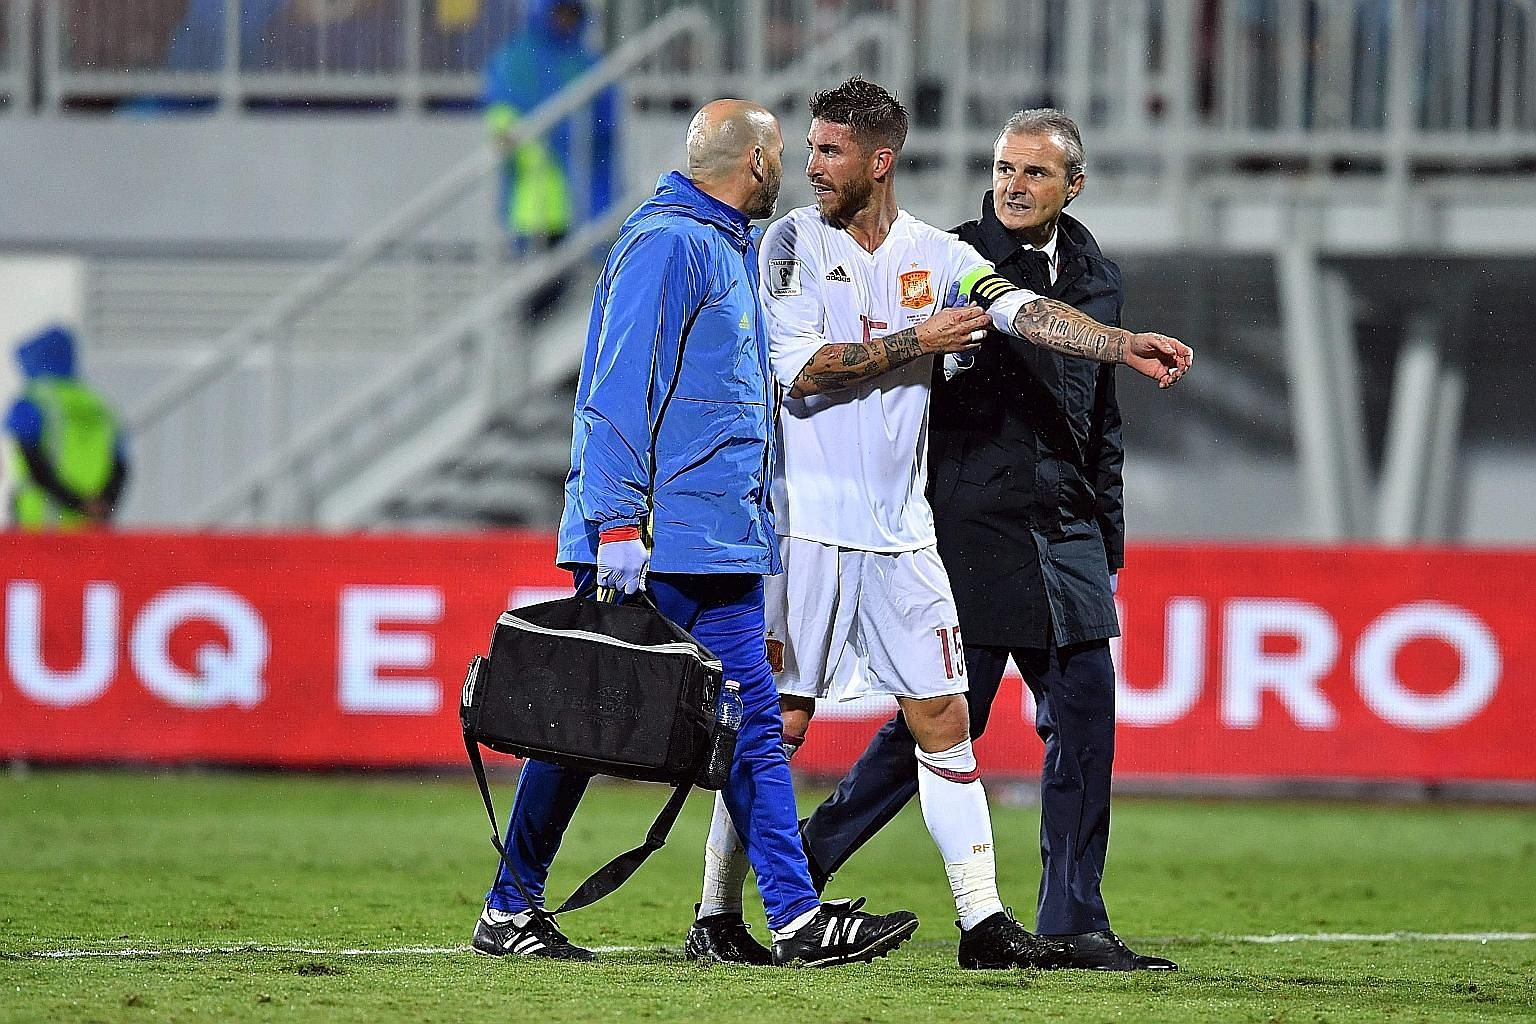 Spain's Sergio Ramos leaving the pitch after suffering a knee injury during the 2-0 win against Albania in the World Cup qualifier on Sunday. Subsequent scans have revealed the injury is more serious than first thought.